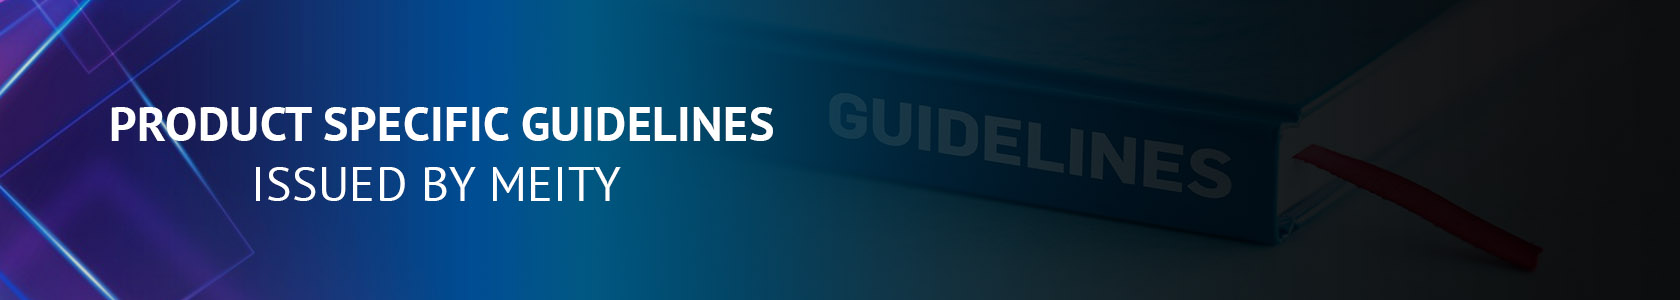 product-guidelines